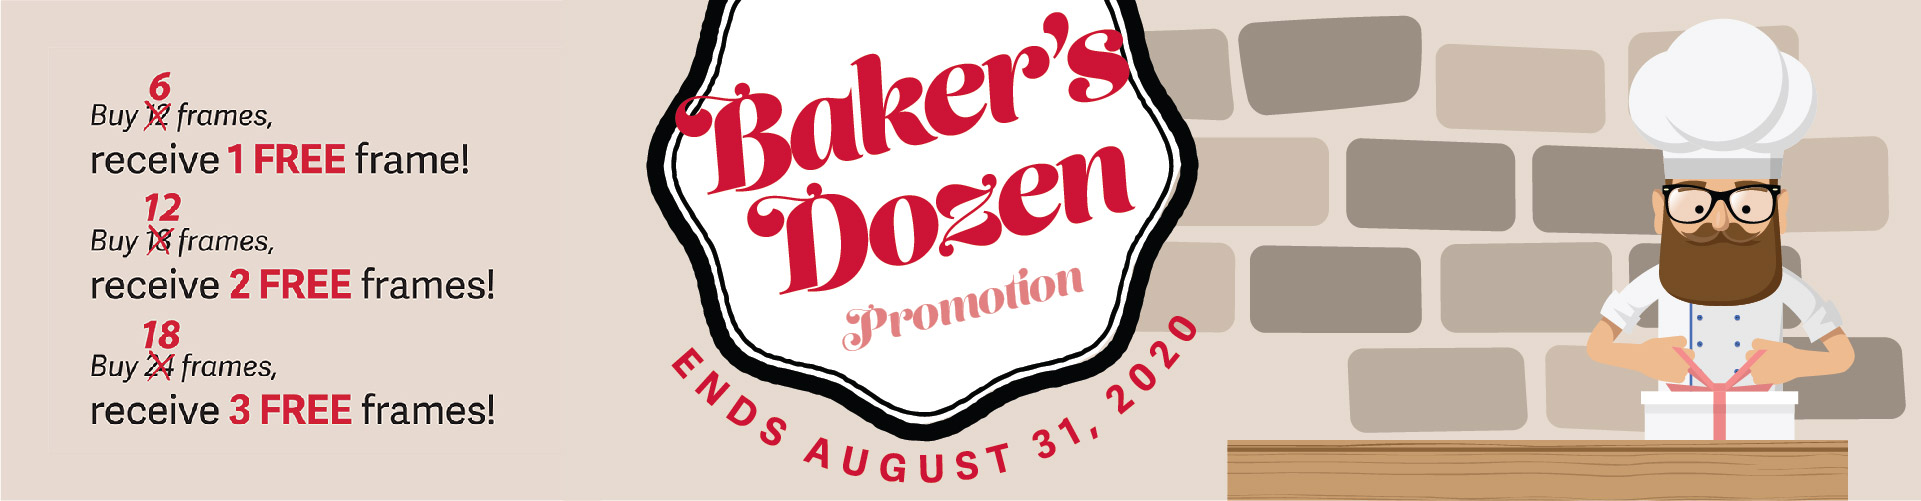 Half Bakers Dozen Promotion